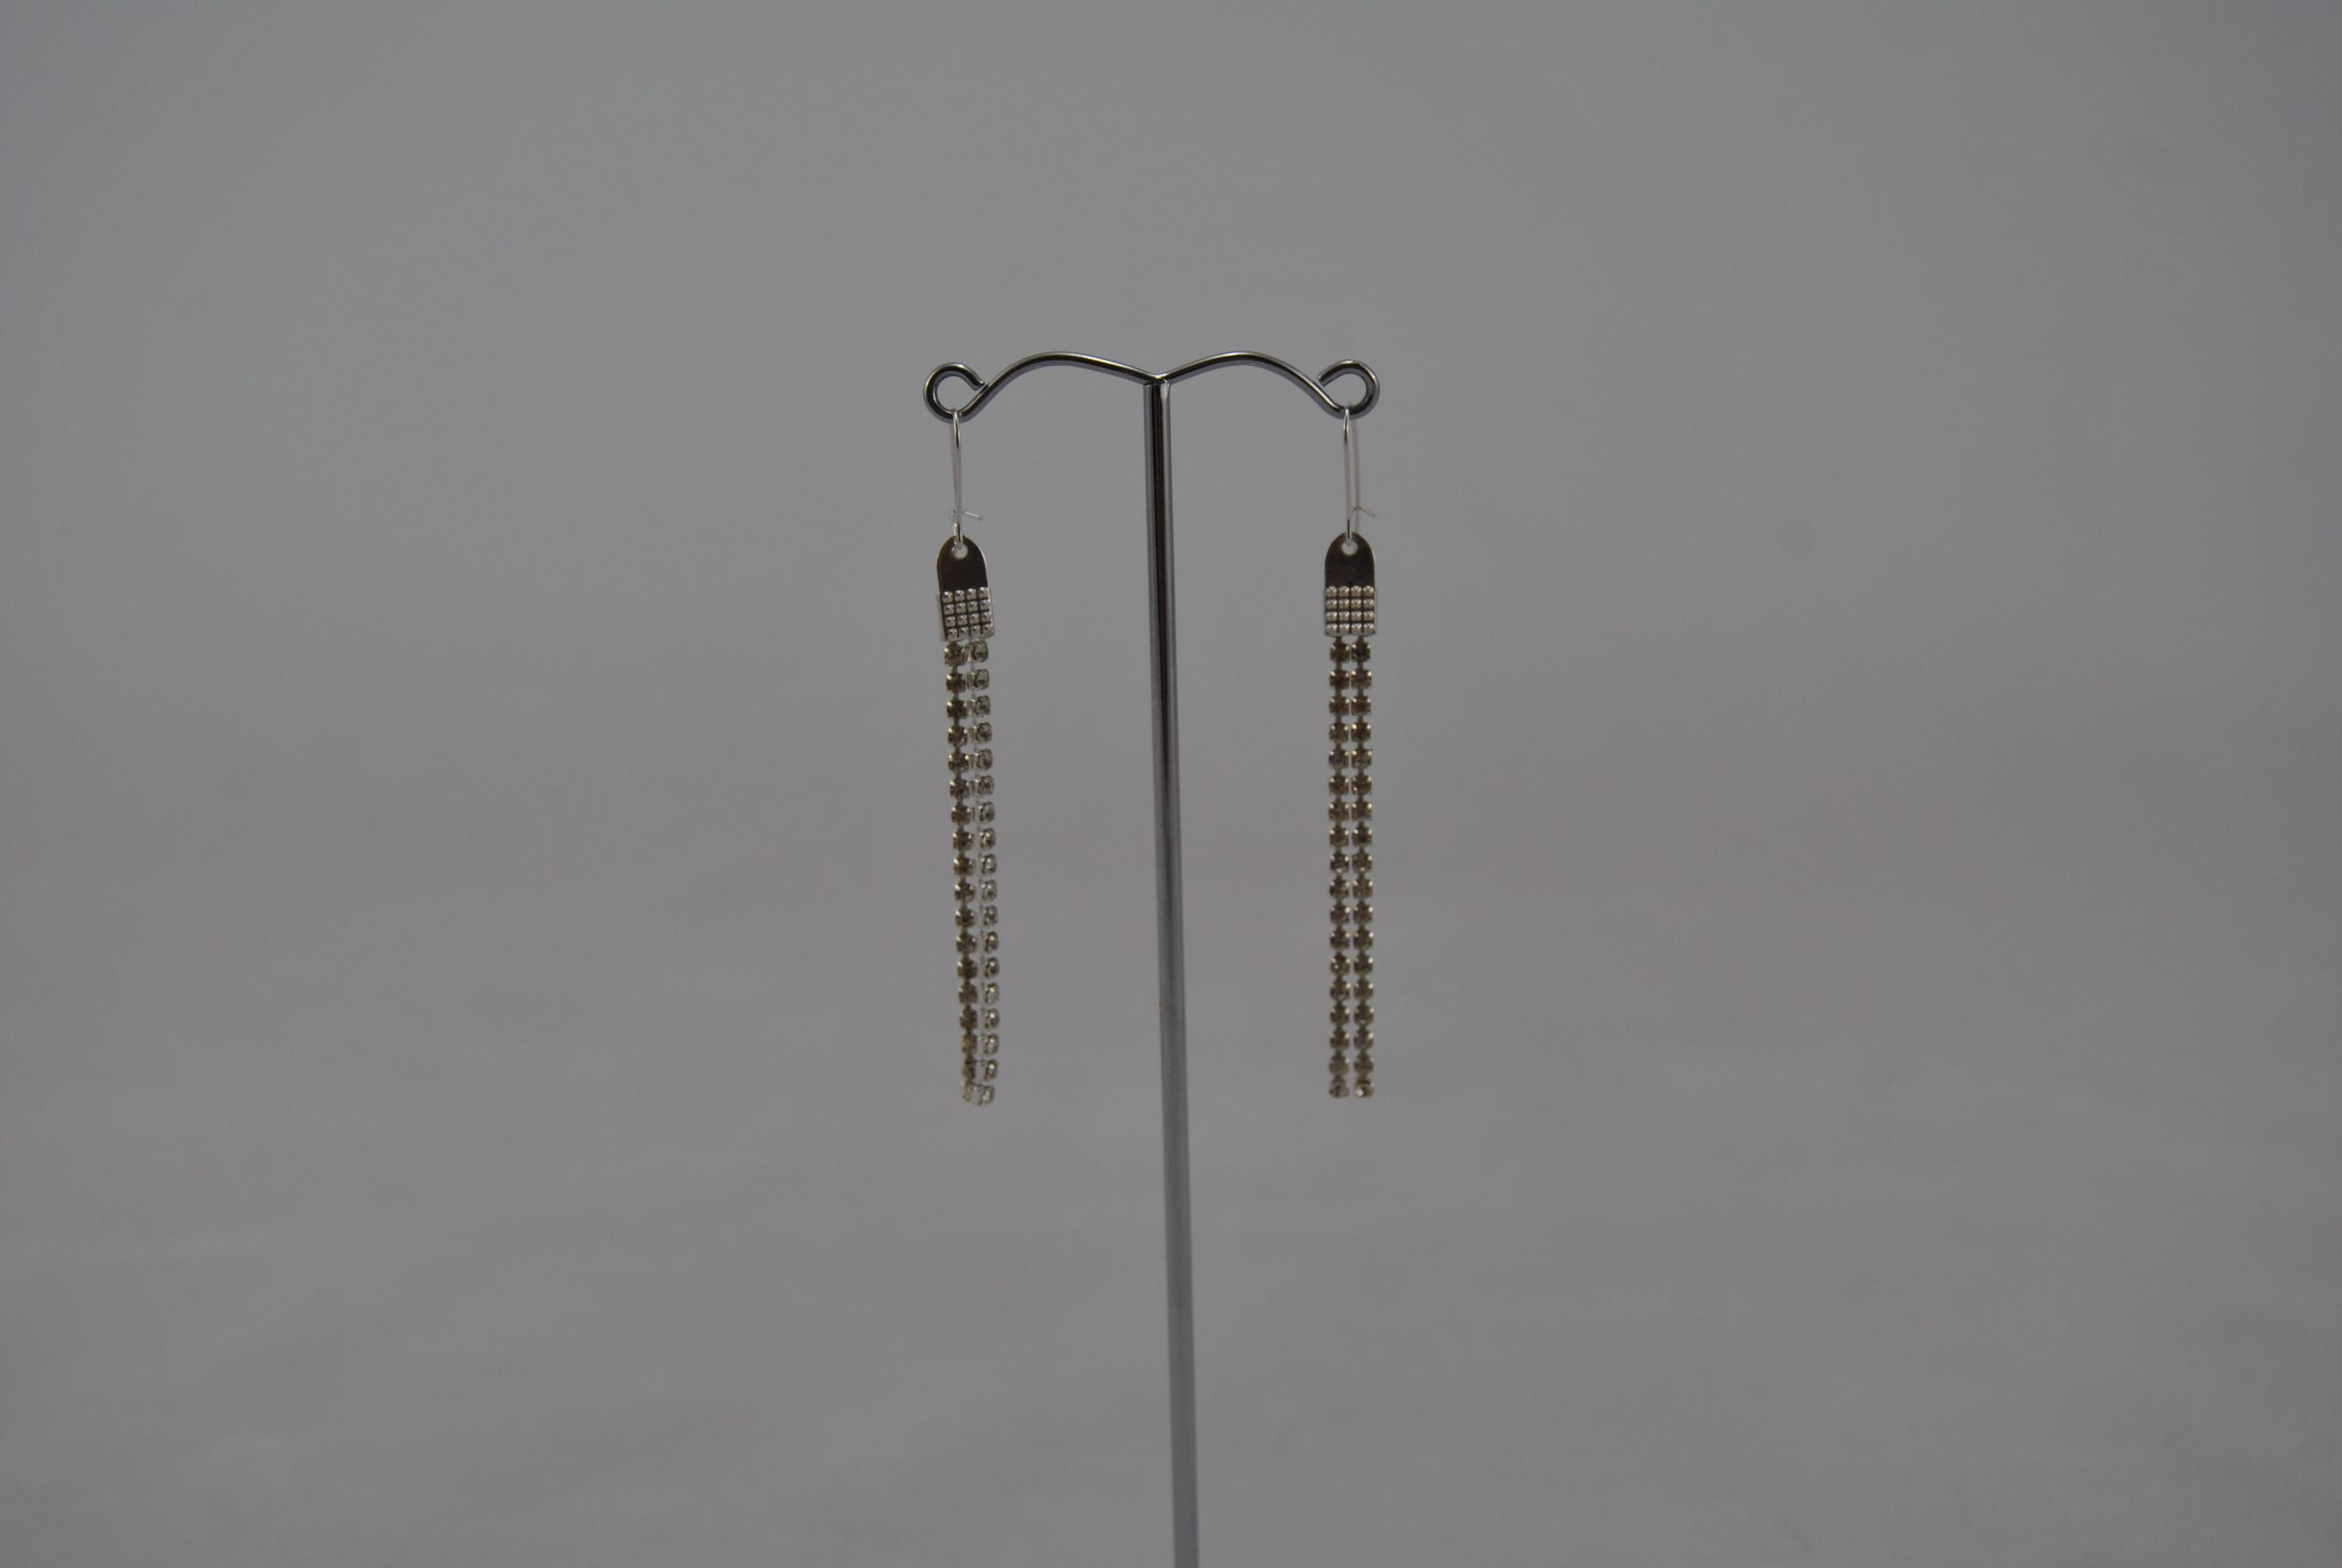 Two Silver Cup Chains Drop Ear Rings